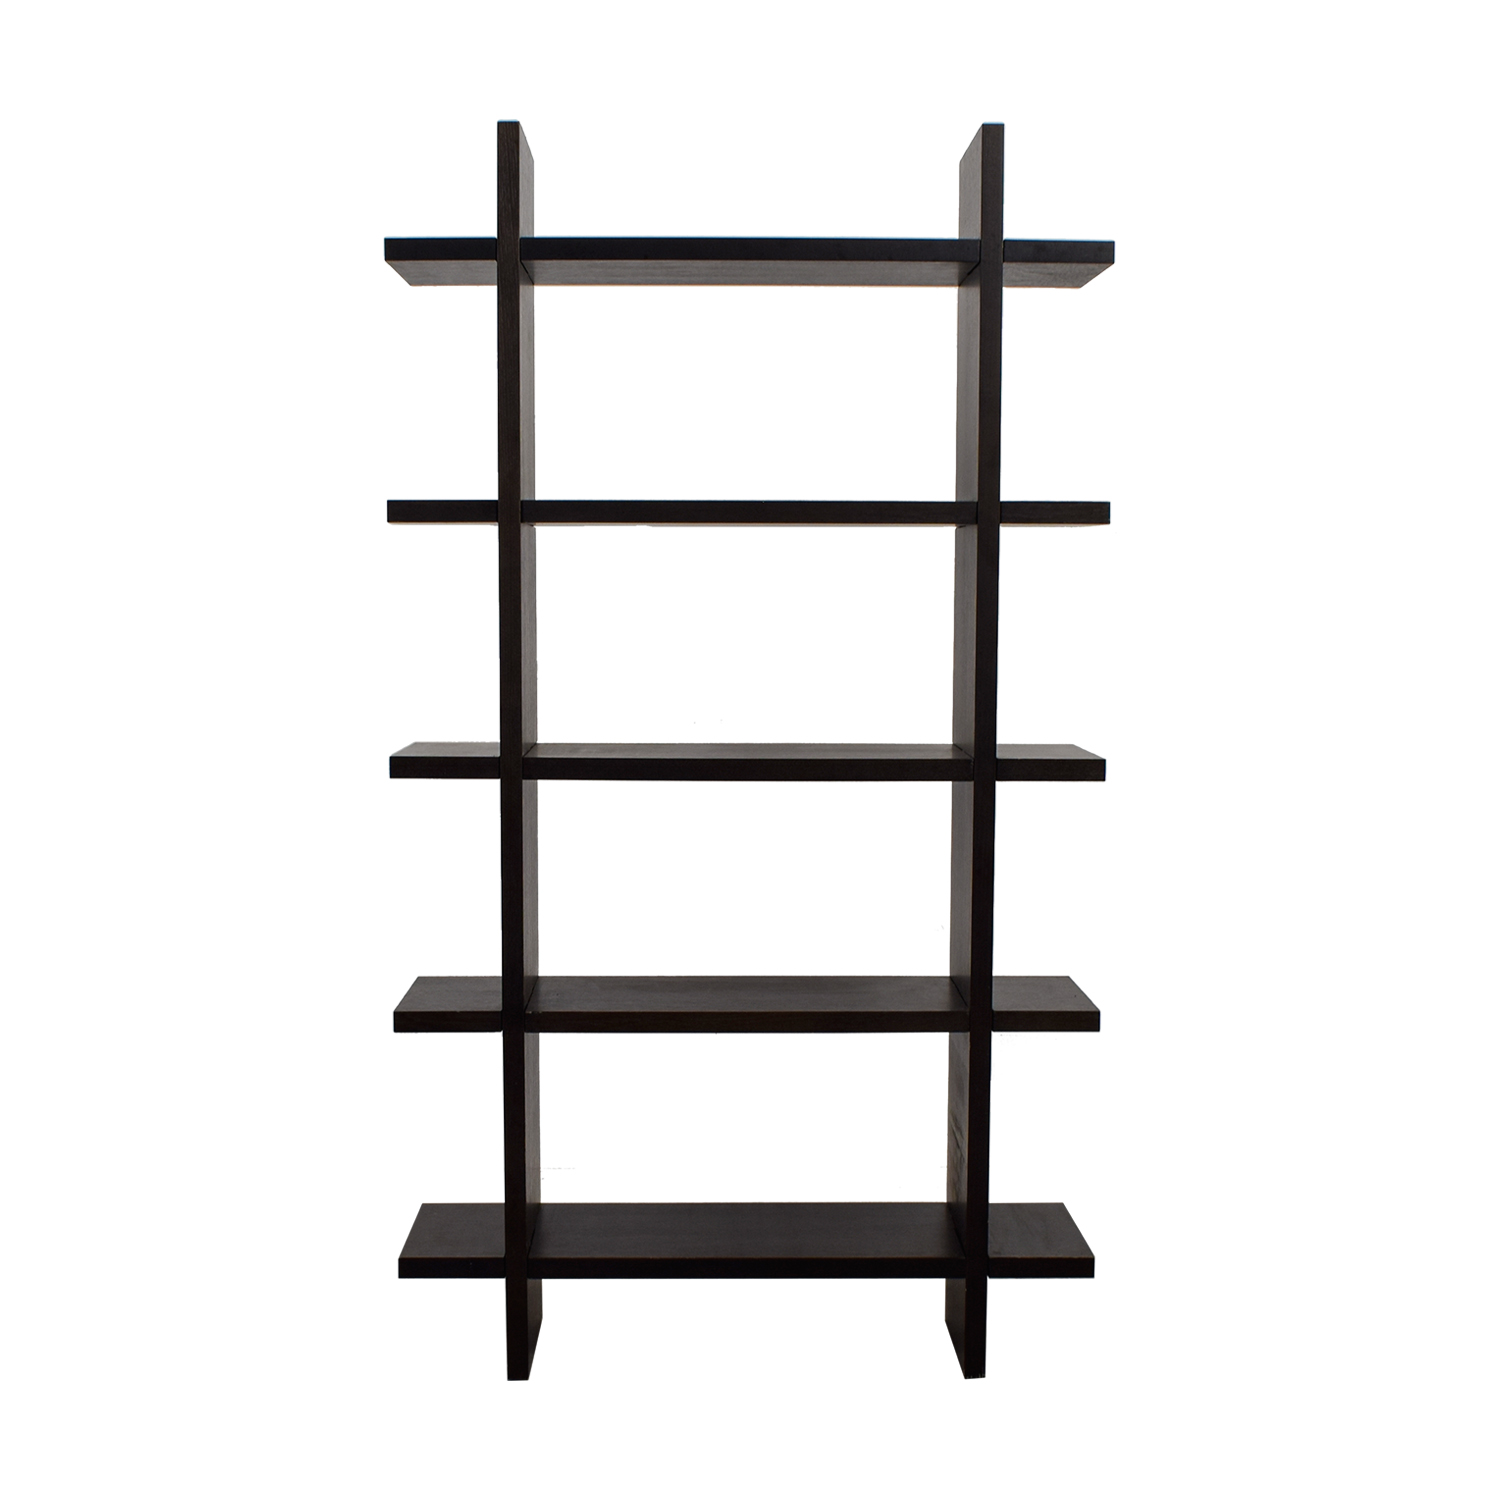 Crate & Barrel Crate & Barrel Black Wood Bookshelf price